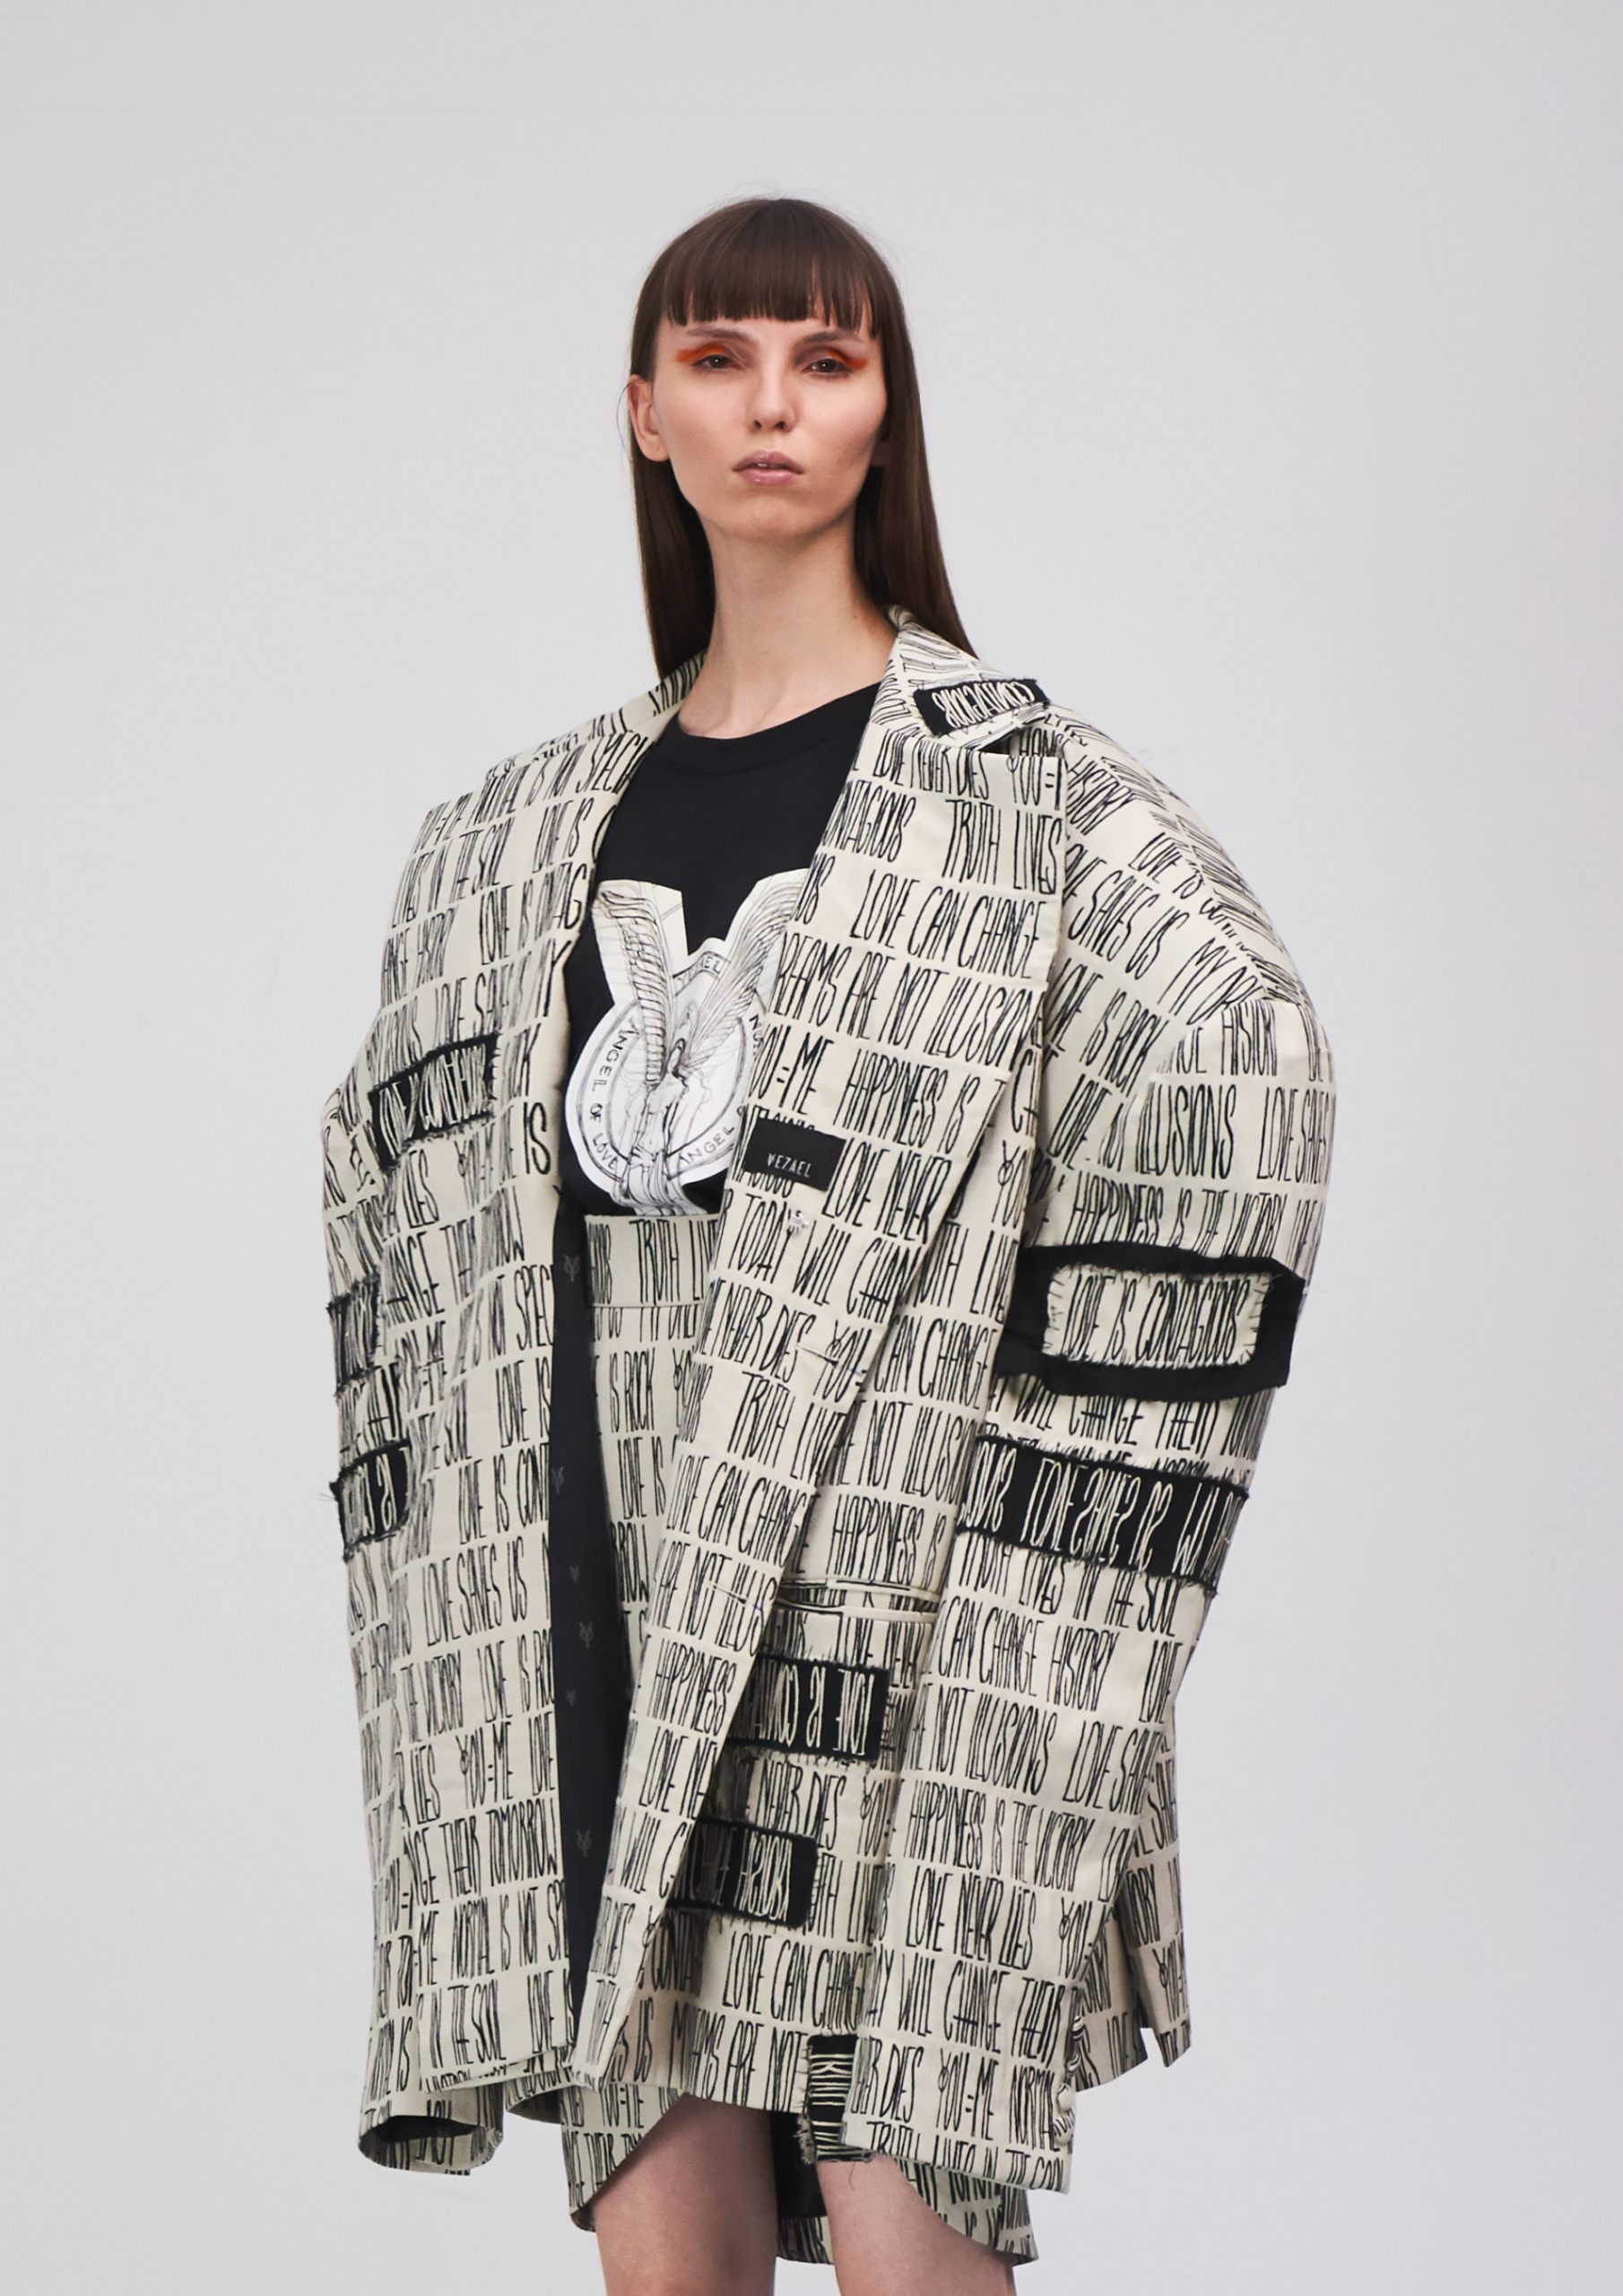 Oversized Proportions Spring 2021 Fashion Trend